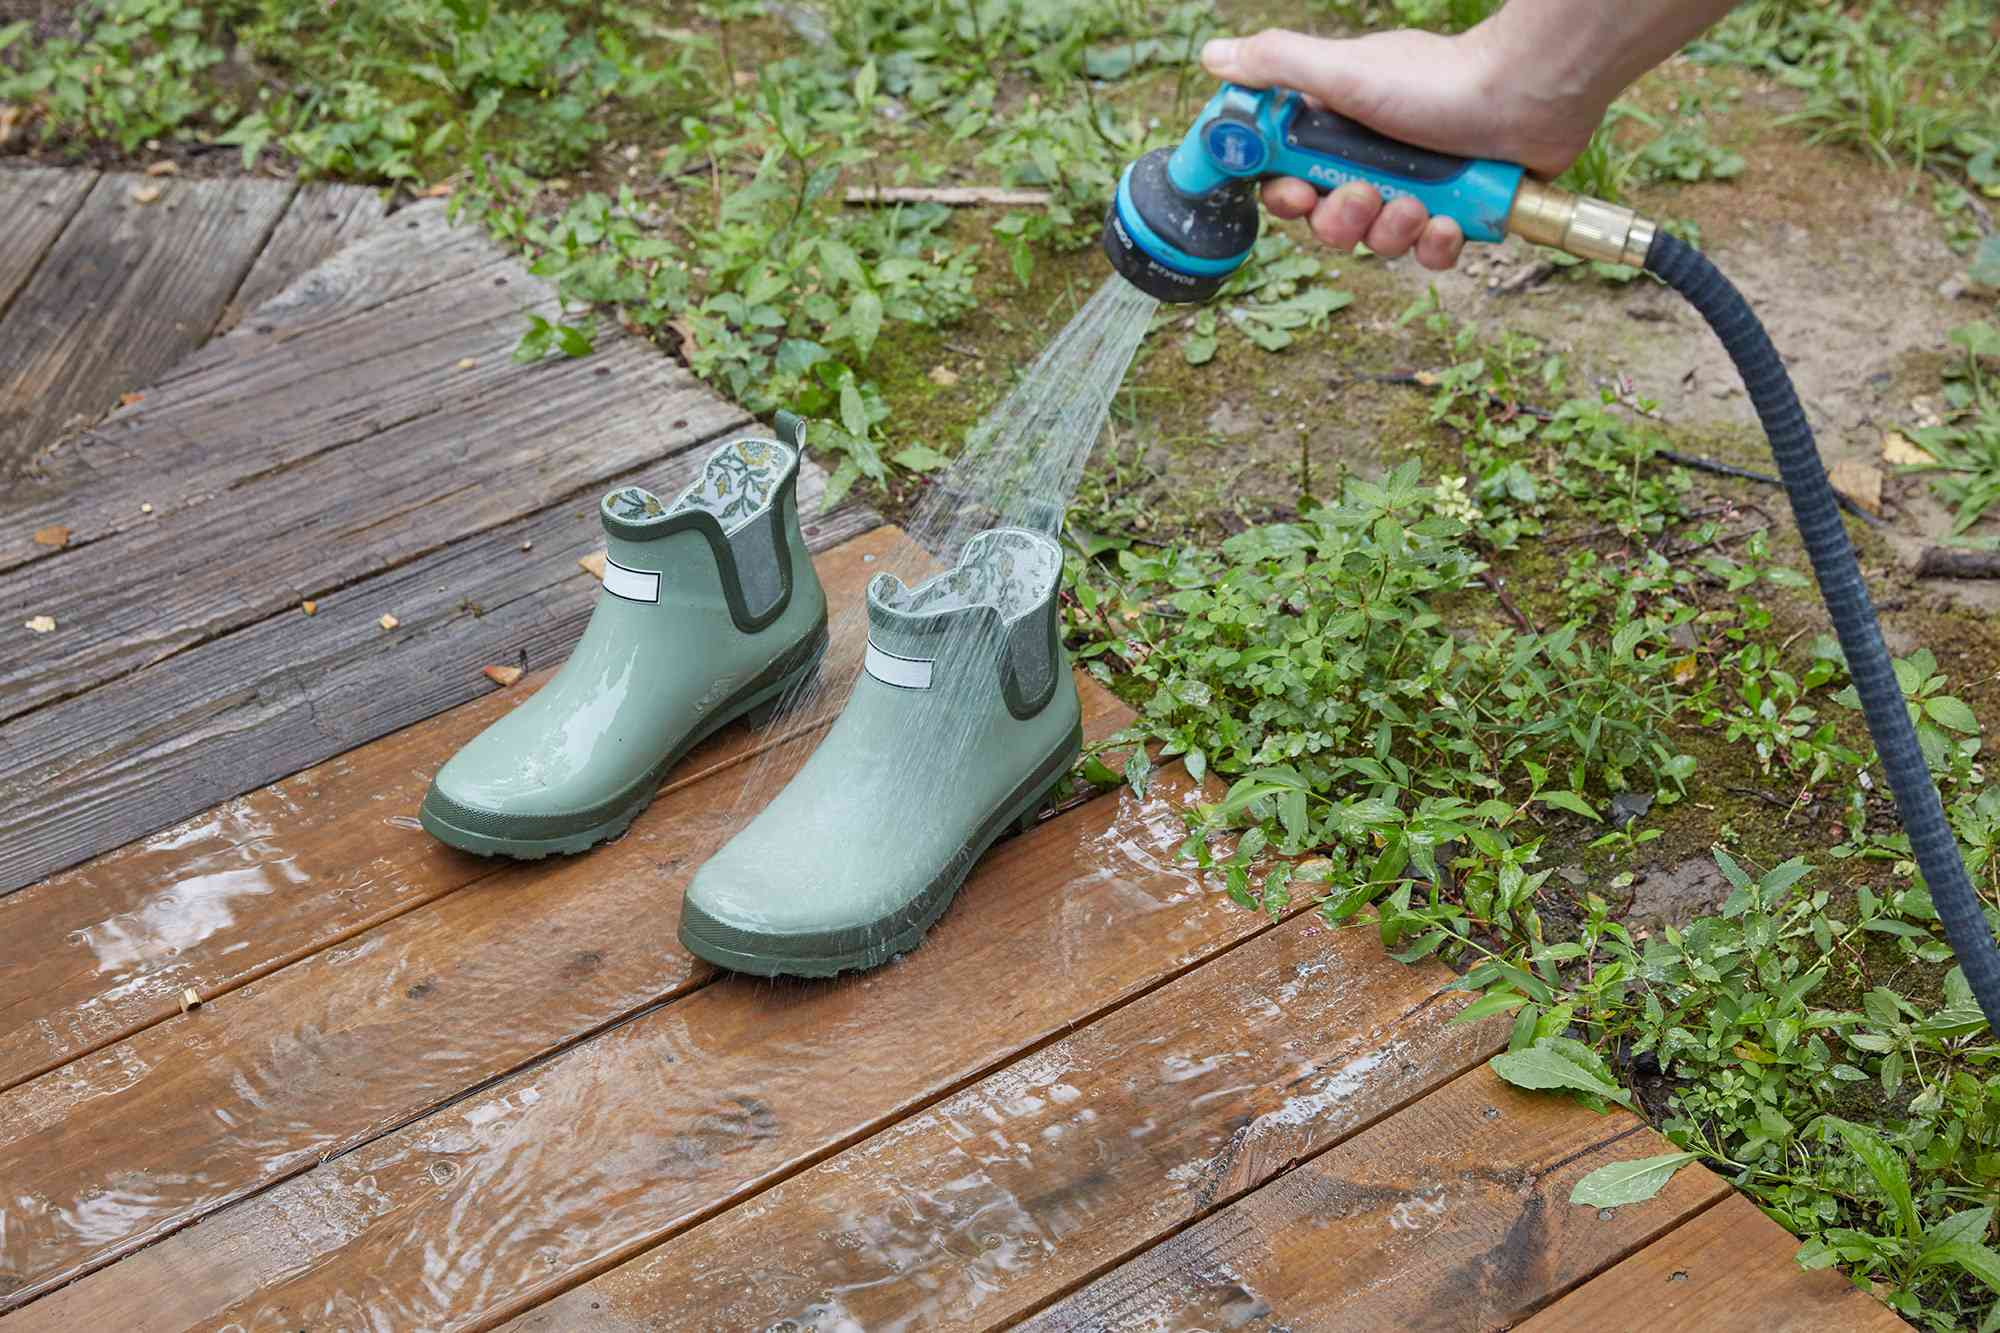 Rubber garden boots cleaned with soapy water from garden hose